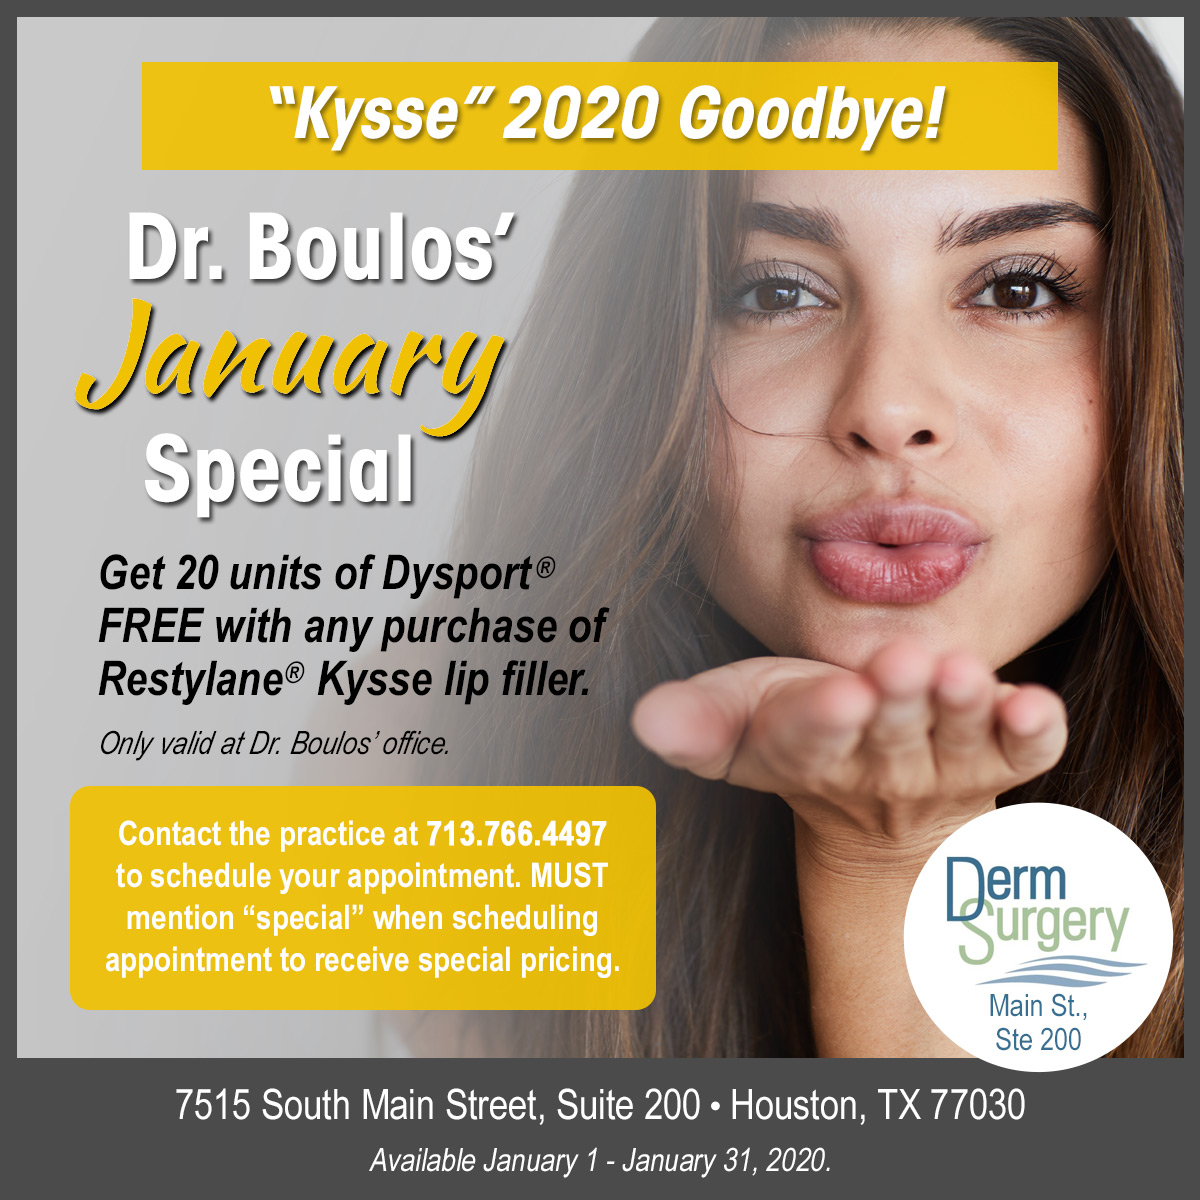 Dr. Boulos's January Kysse Special